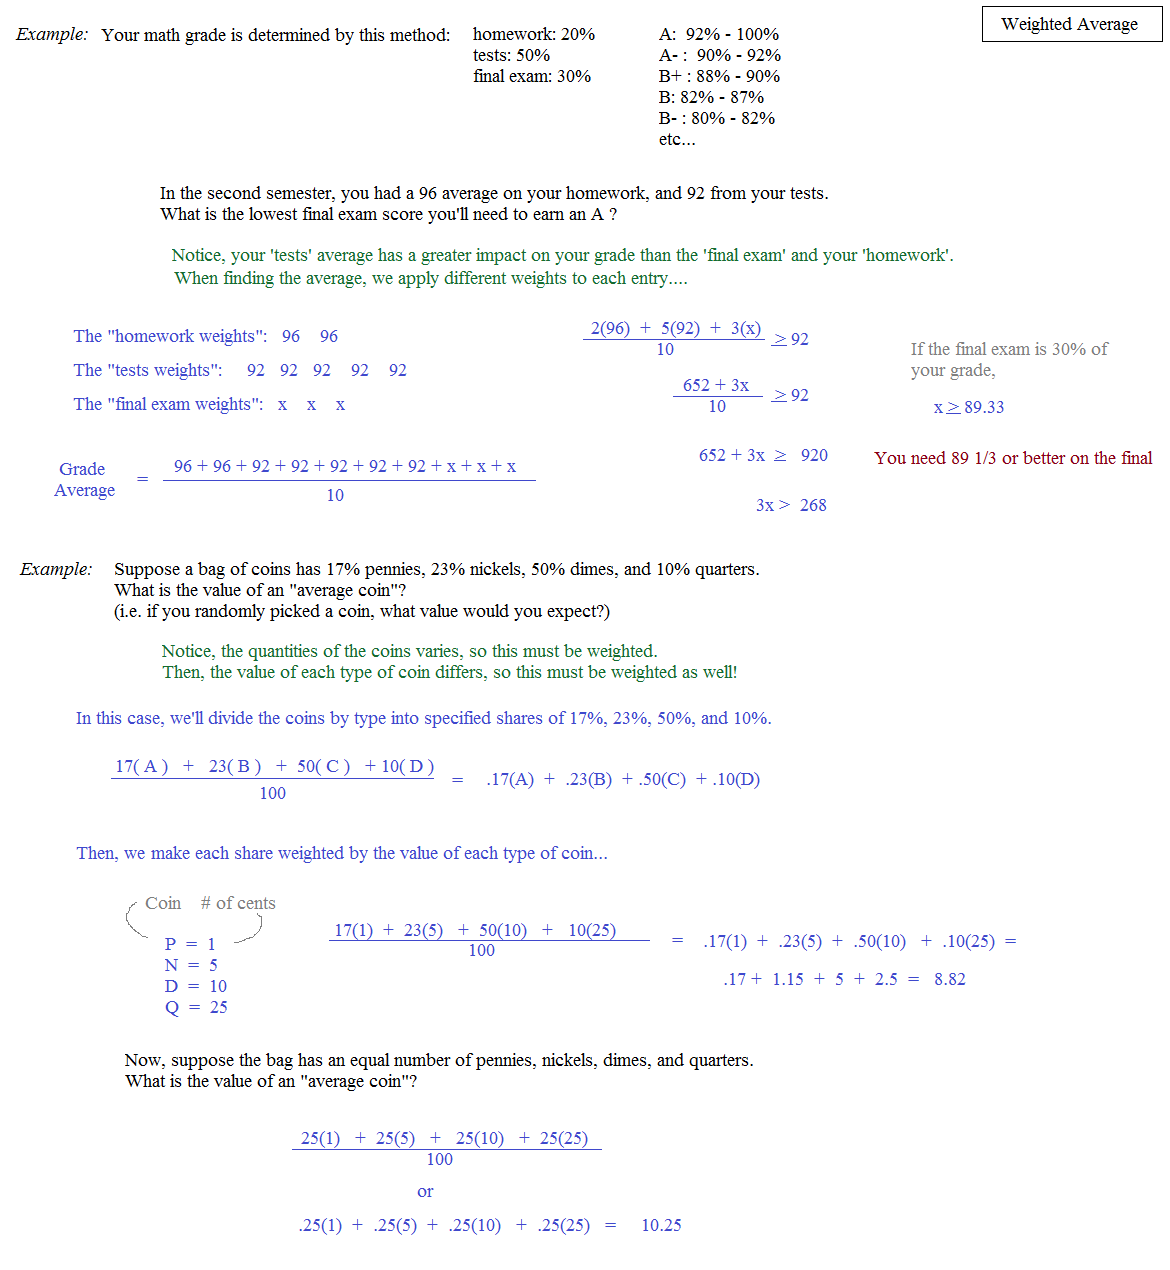 worksheet Math Aids Equivalent Fractions math aide equivalent fractions decimals and percents worksheet aids mean median mode find the slope of a line weighted average exam example